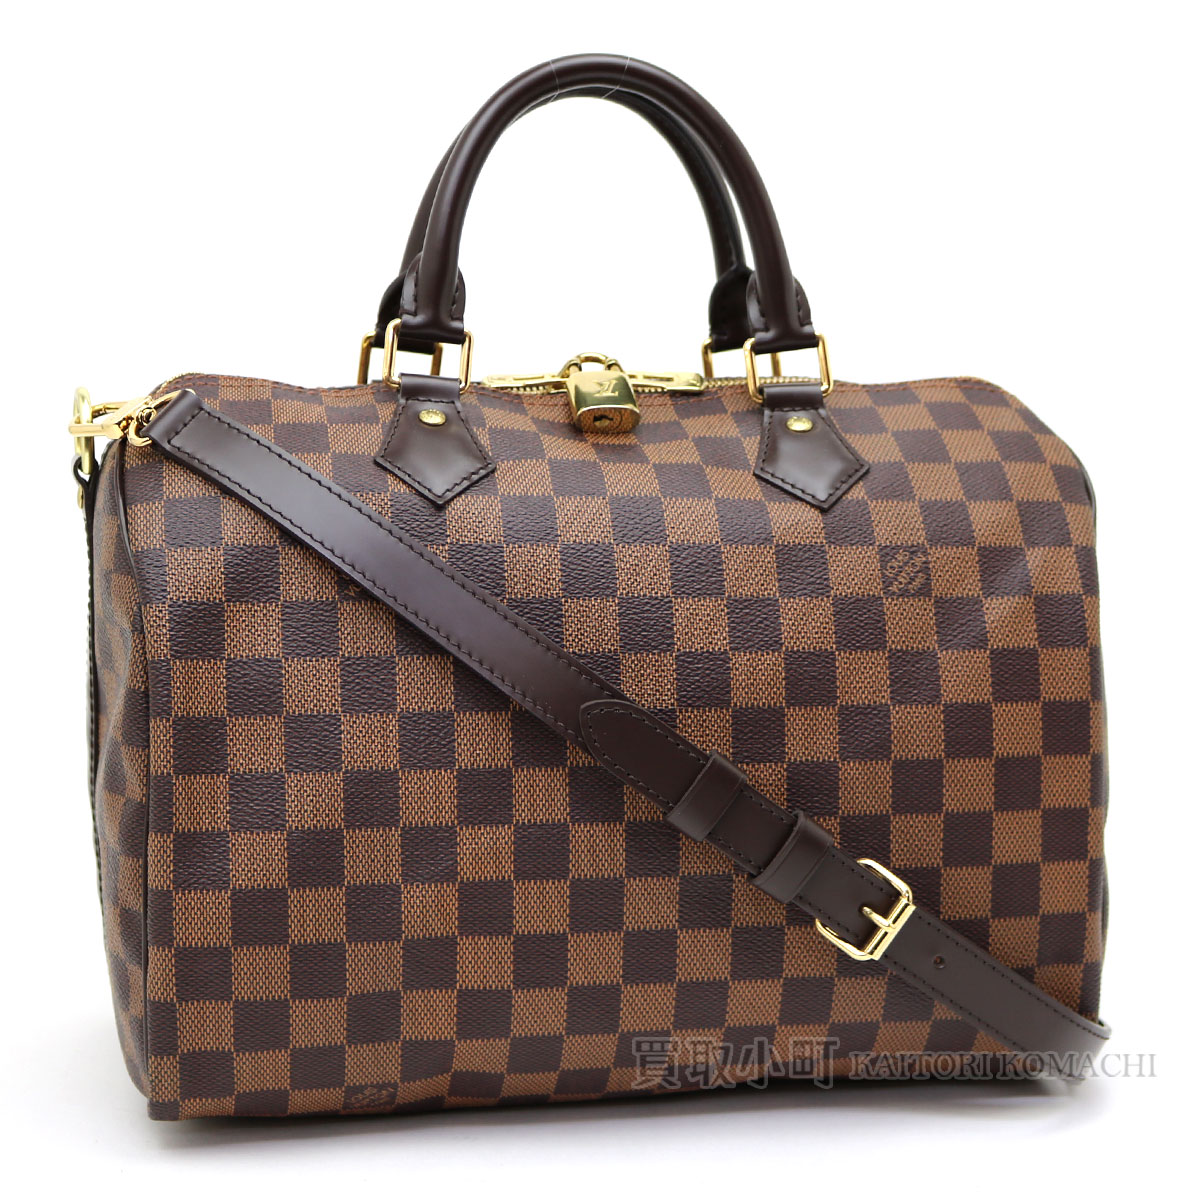 Speedy 30 LV SPEEDY BANDOULIERE 30 DAMIER with Louis Vuitton N41367 speedy  band re-yell 30 ダミエアイコンボストンバッグ 2WAY shoulder bag handbag strap d21582c53474